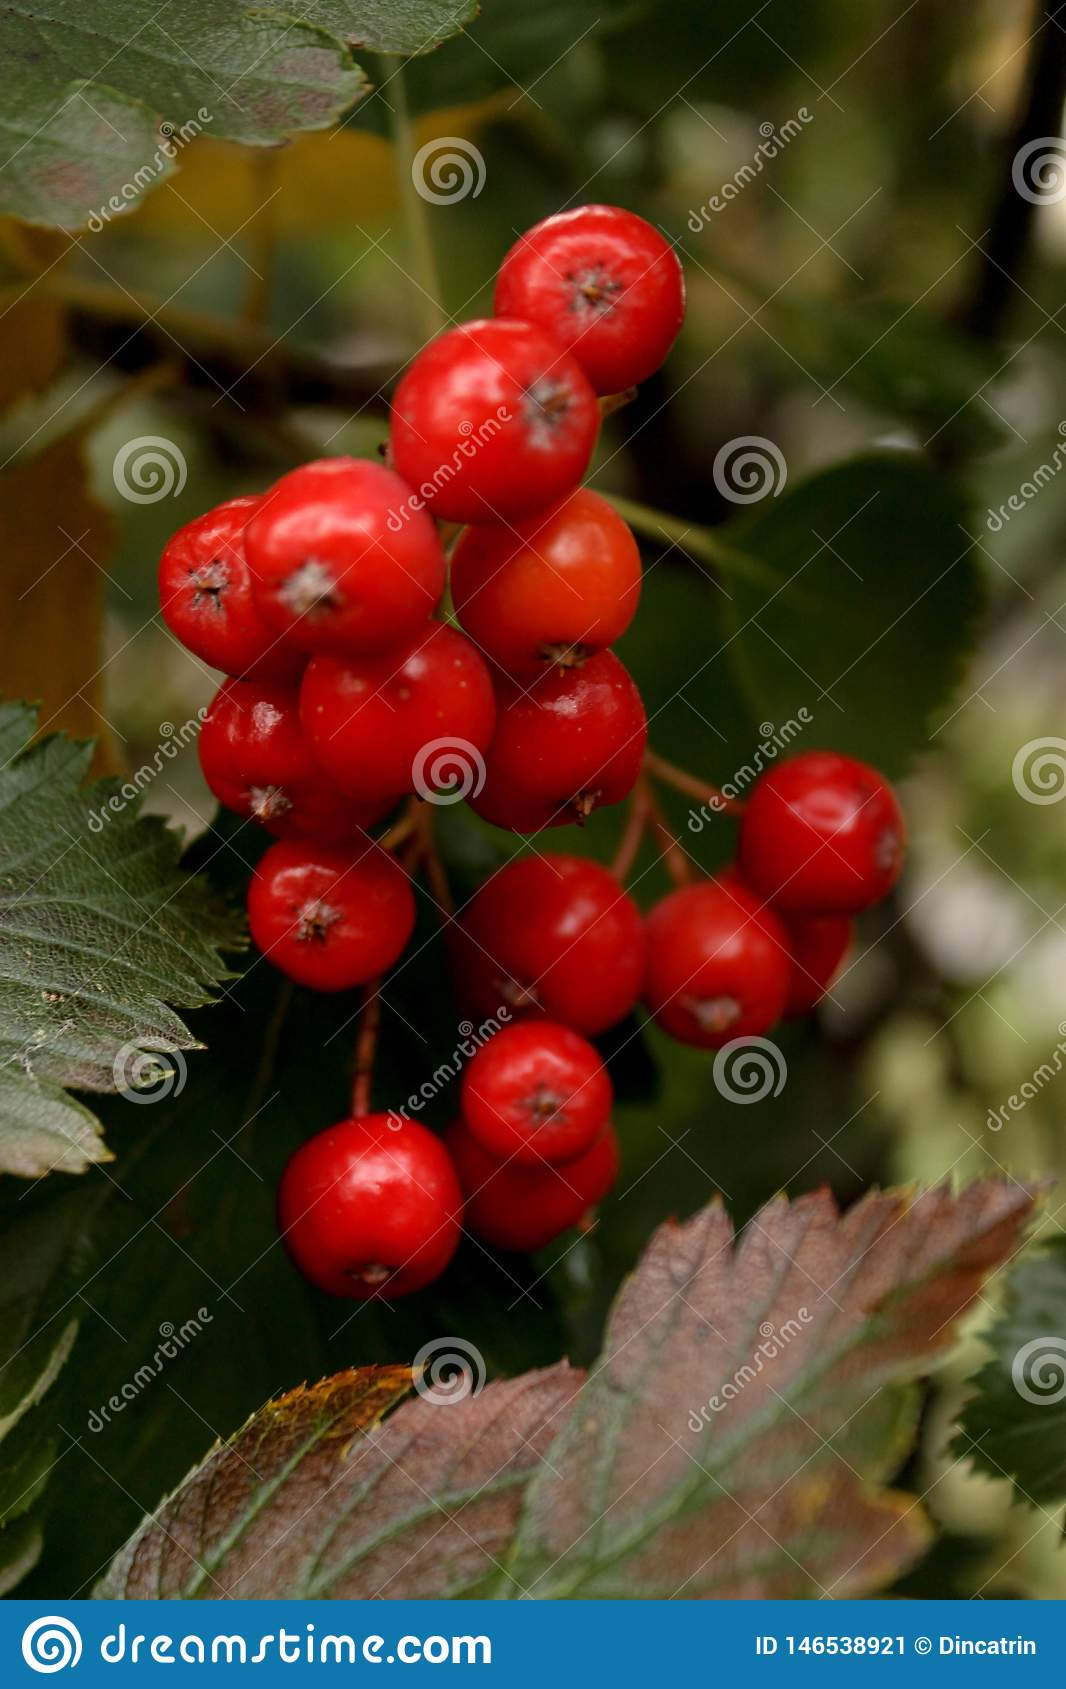 WOW! So nice red berries